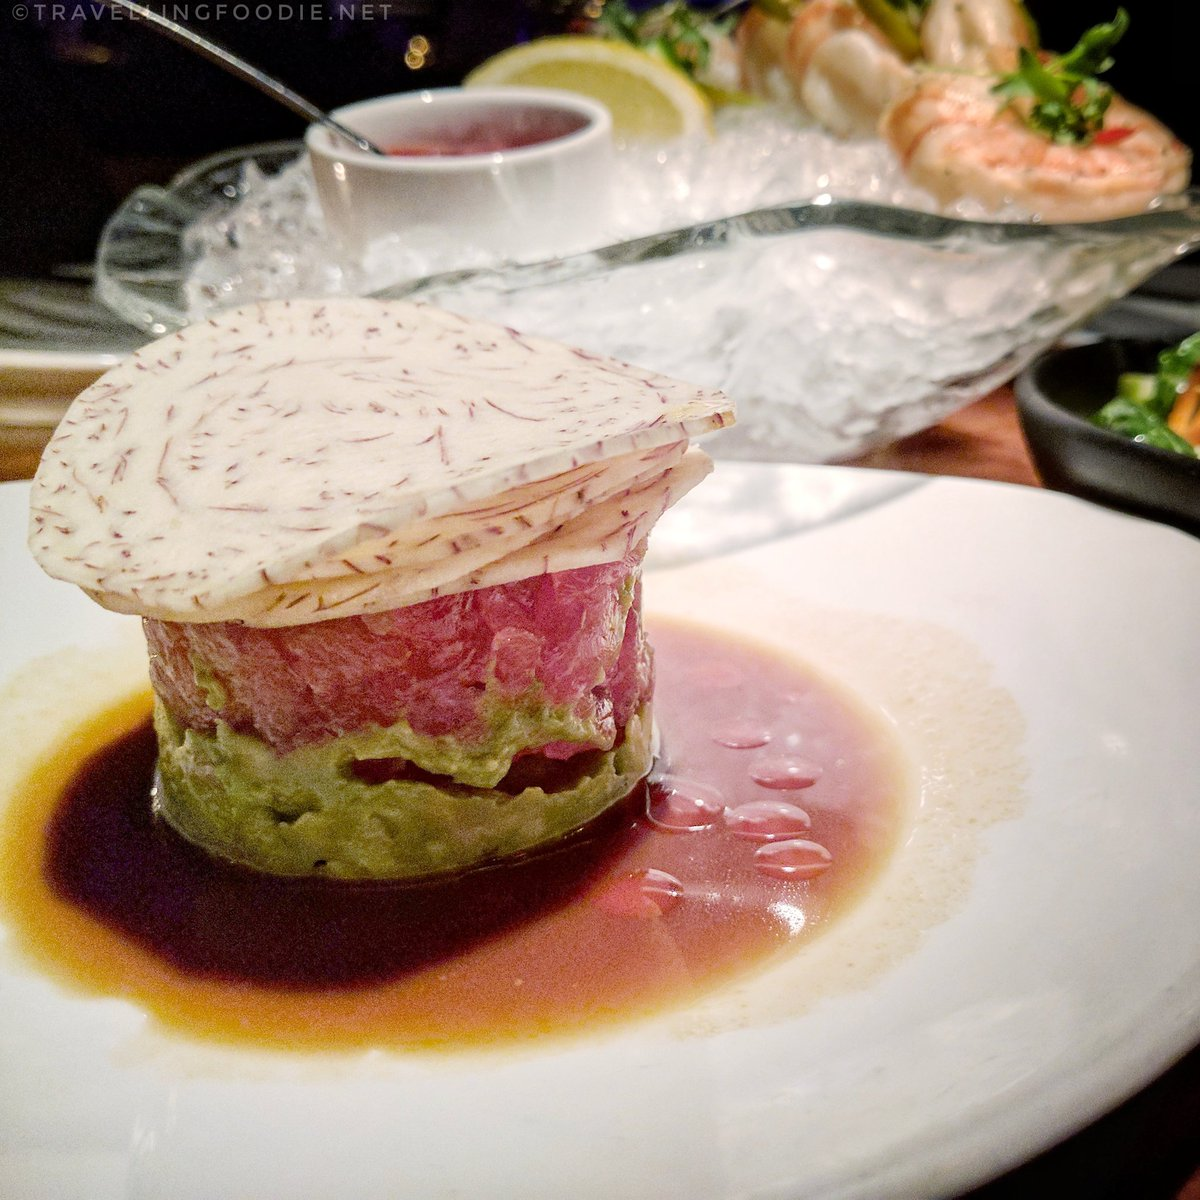 Travelling Foodie Eats HAWAIIAN BIG EYE TUNA TARTARE at STK in The Cosmopolitan of Las Vegas